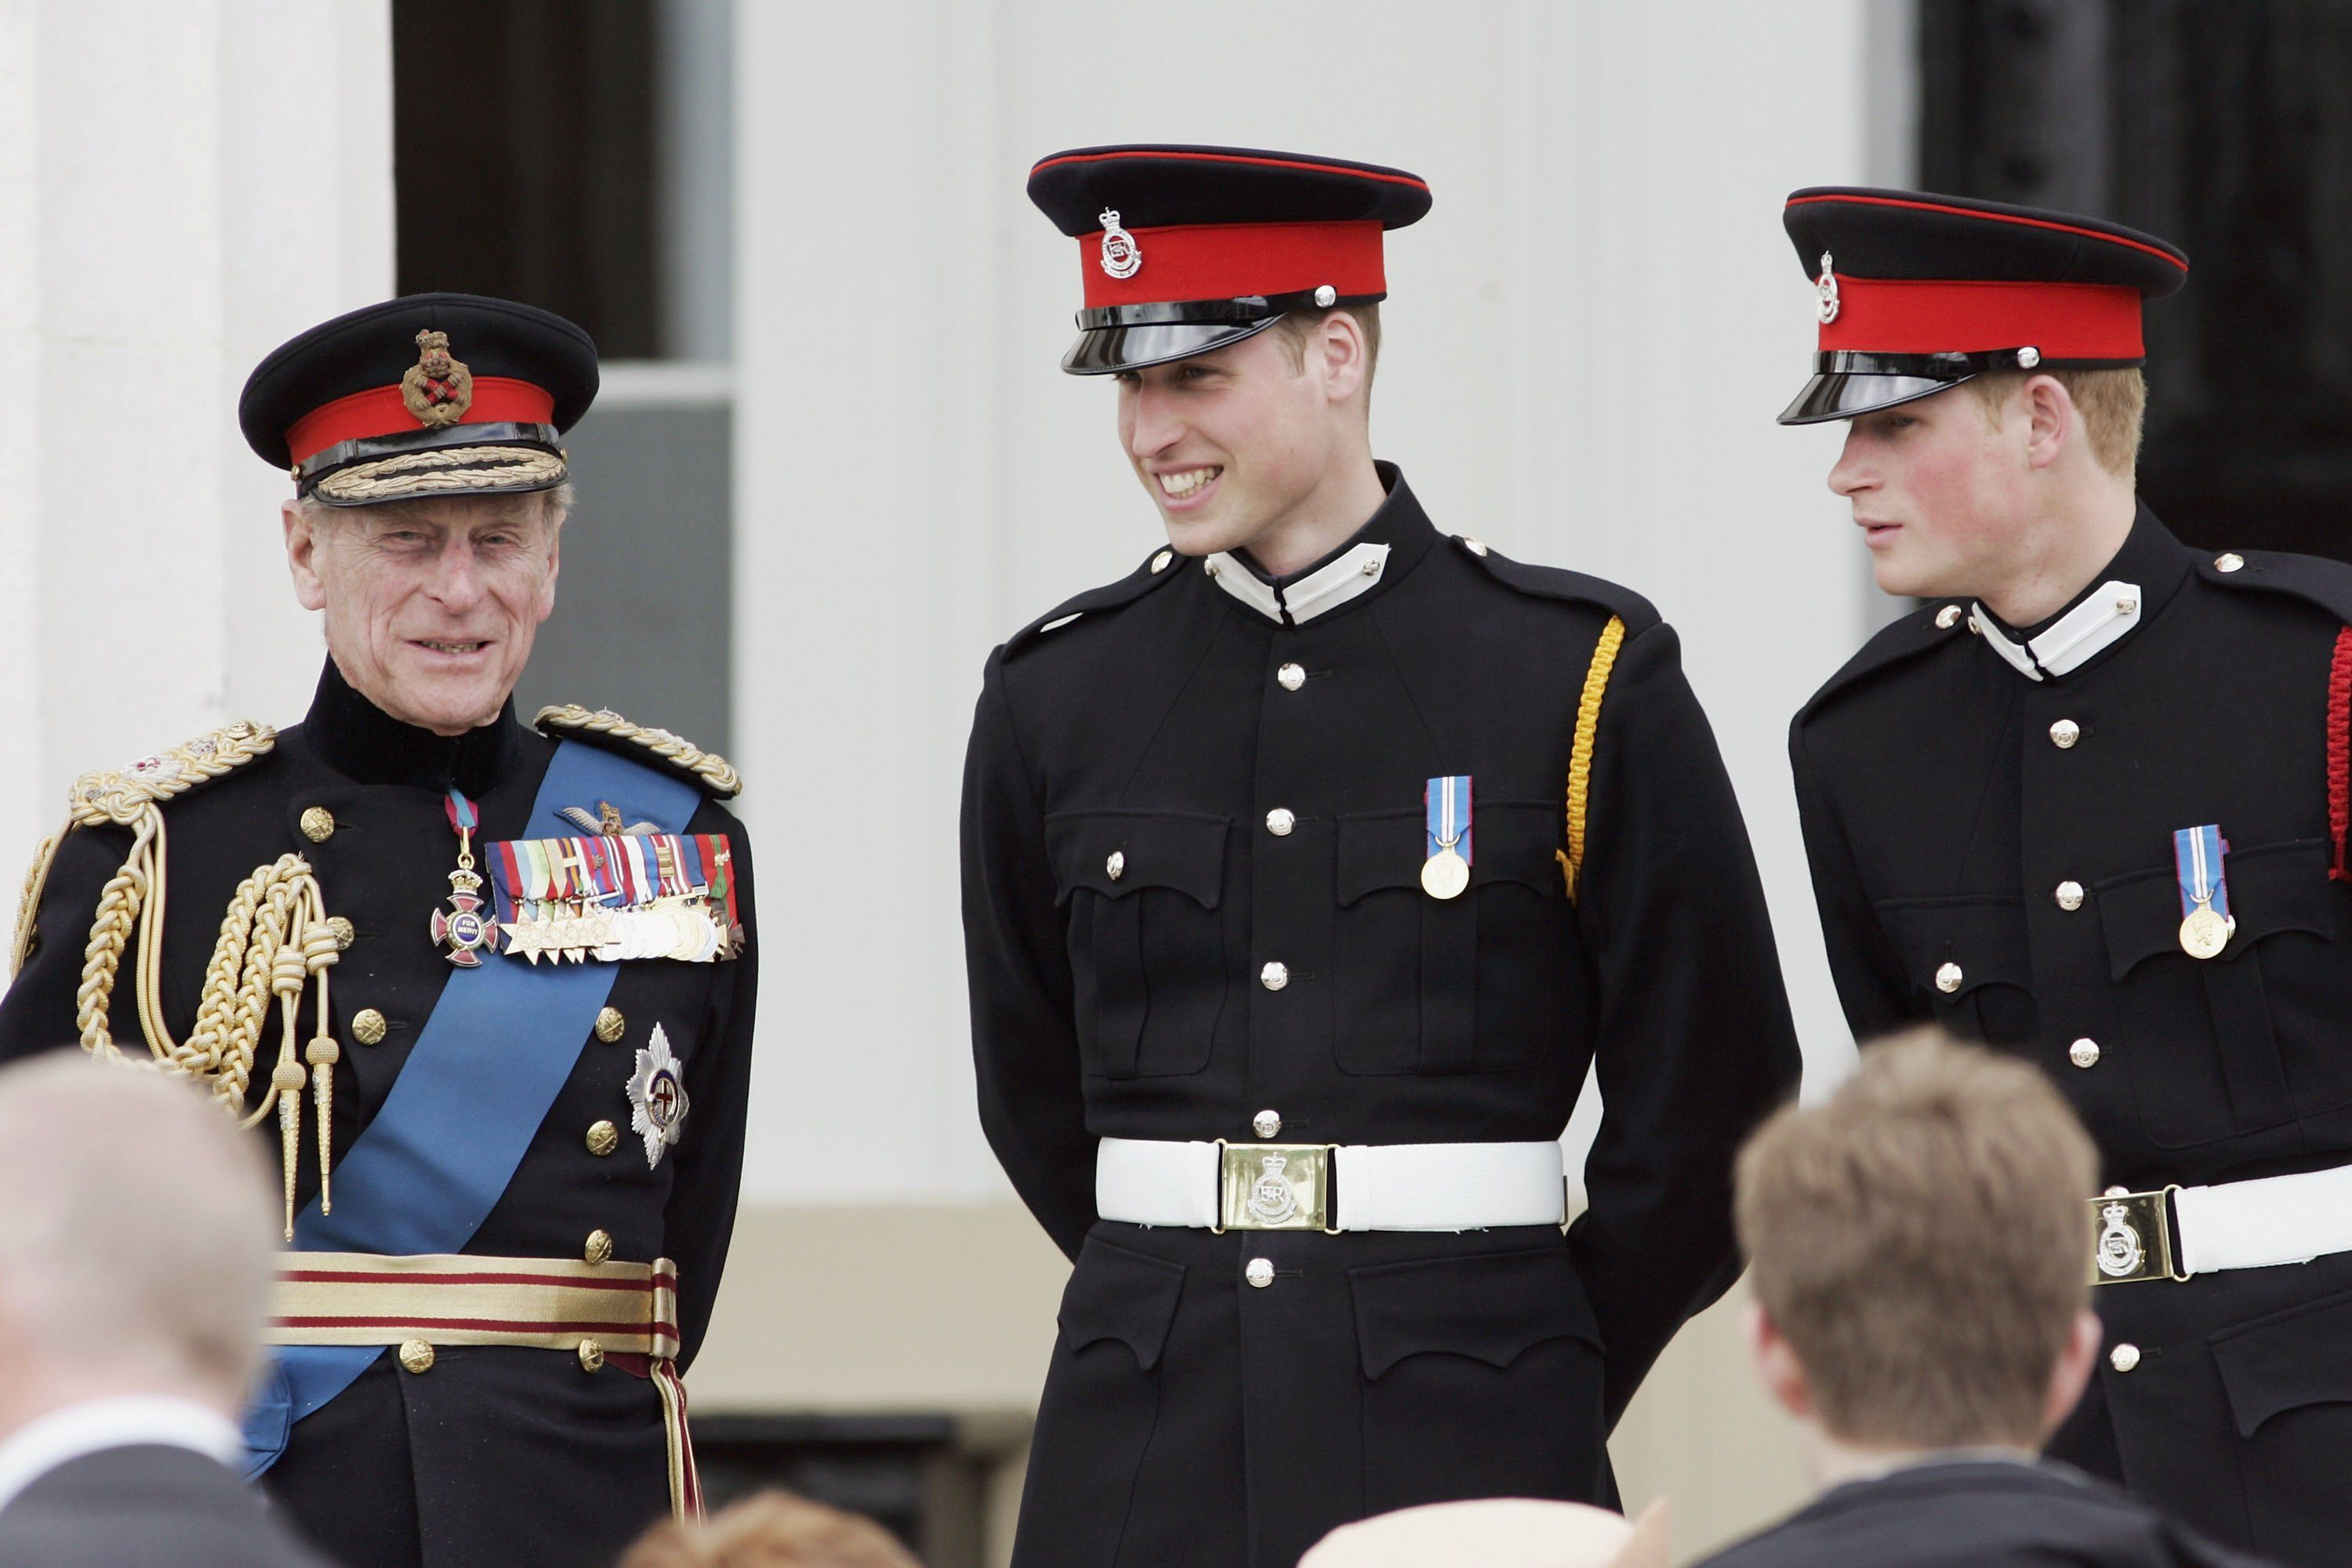 Why Prince William and Prince Harry Aren't Walking Side-by-Side at Prince Philip's Funeral